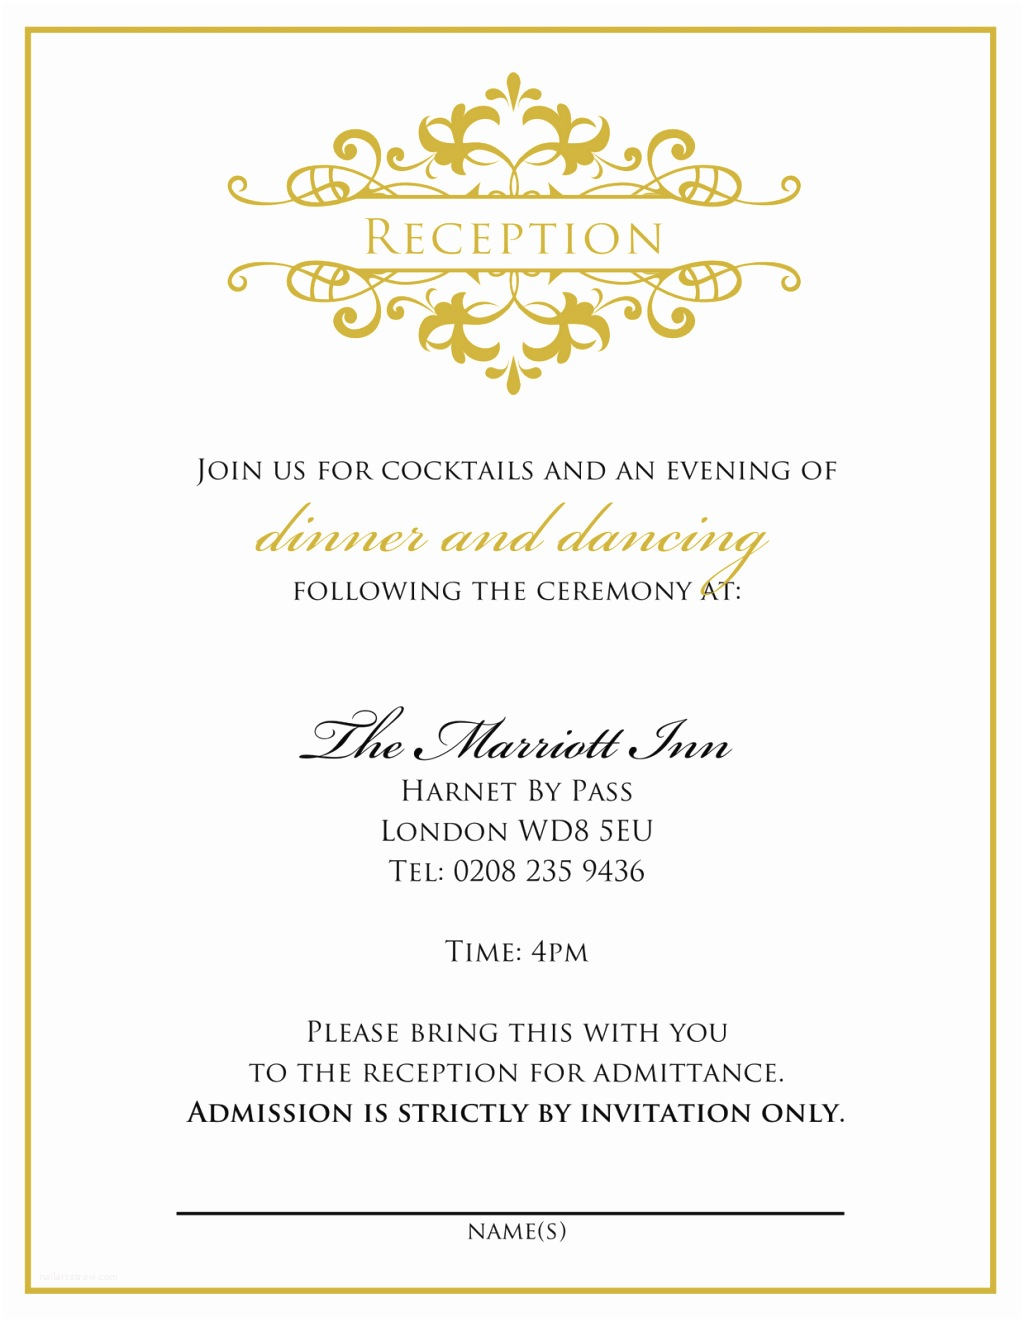 Wedding Invitation Wording Couple Hosting Wedding Invitation Wording Ideas with Poems and Couple